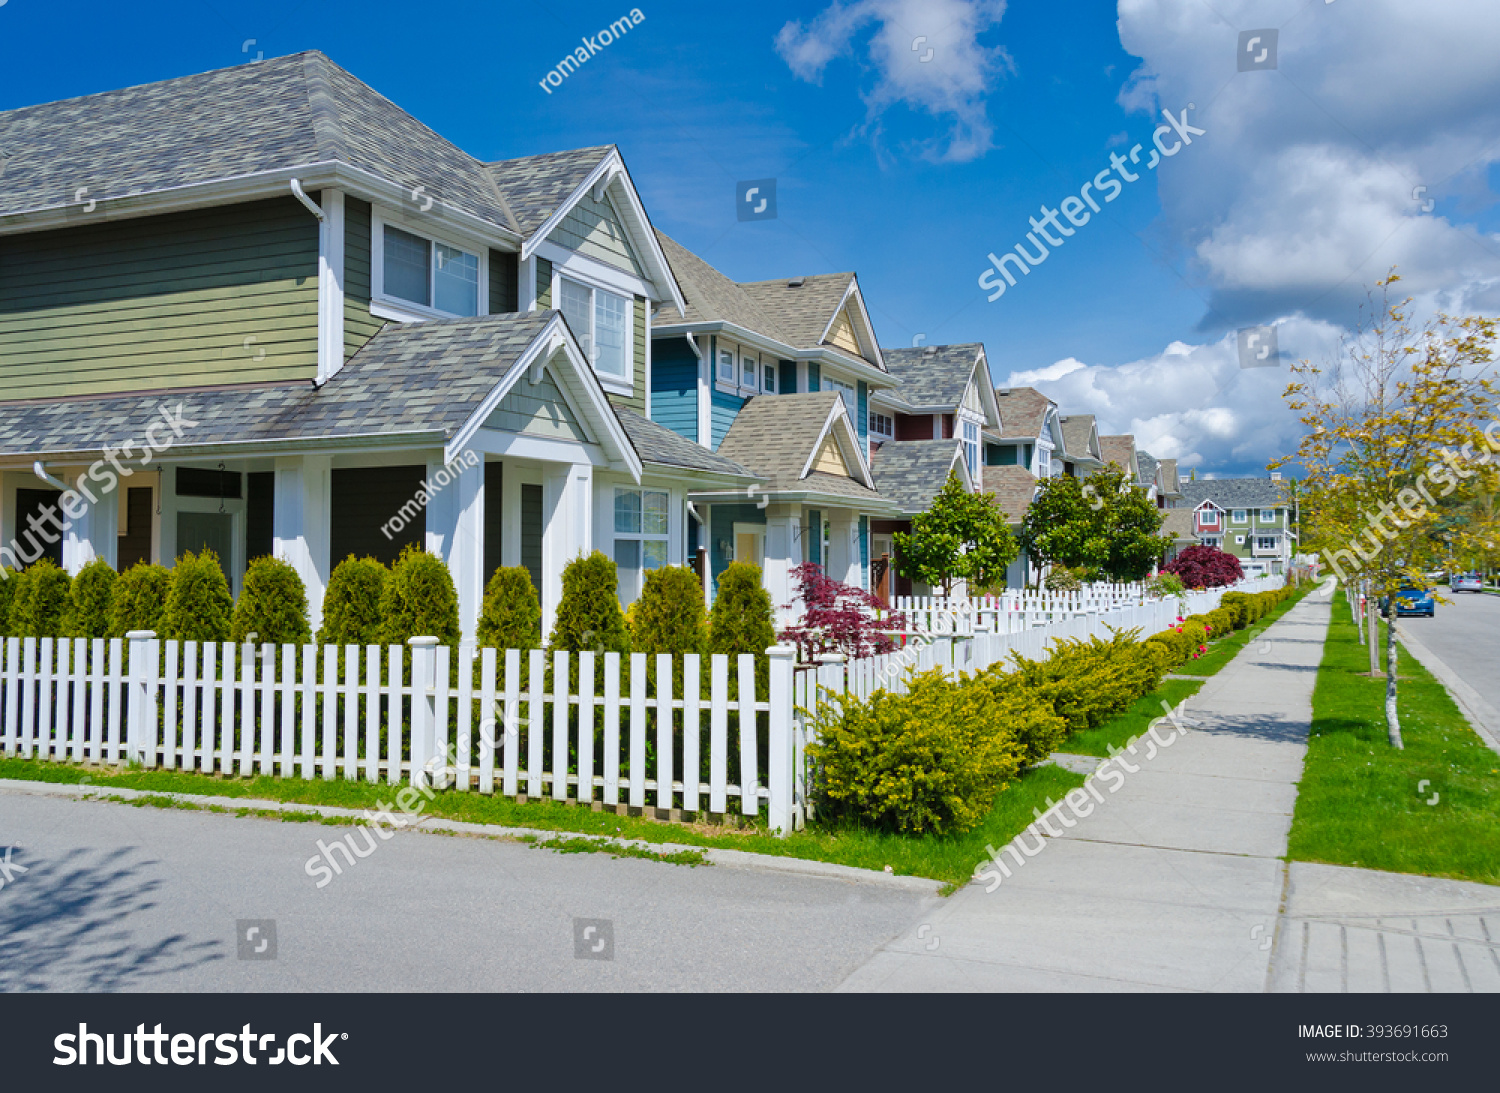 Nice comfortable great neighborhood some homes stock photo for Nice houses in canada